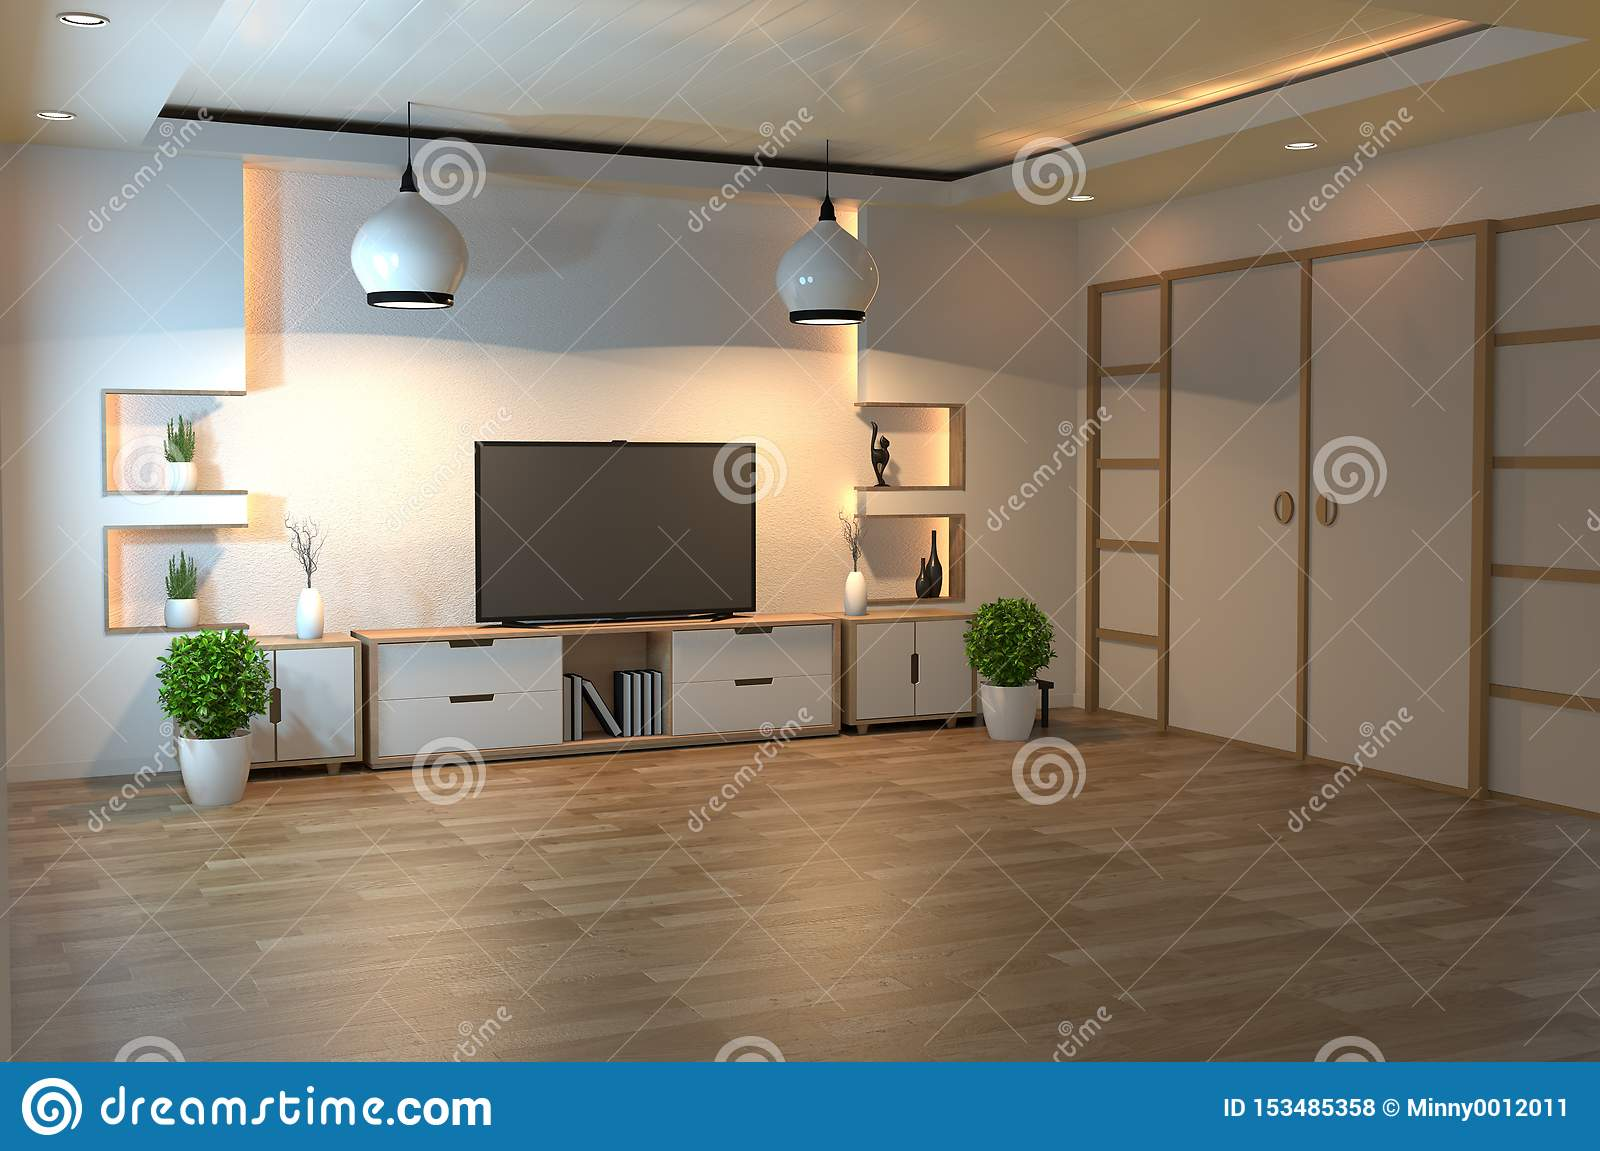 Interior Design Modern Living Room With Smart Tv Table Lamp Wood Floor And White Wall Minimal Style 3d Rendering Stock Illustration Illustration Of Color Armchair 153485358